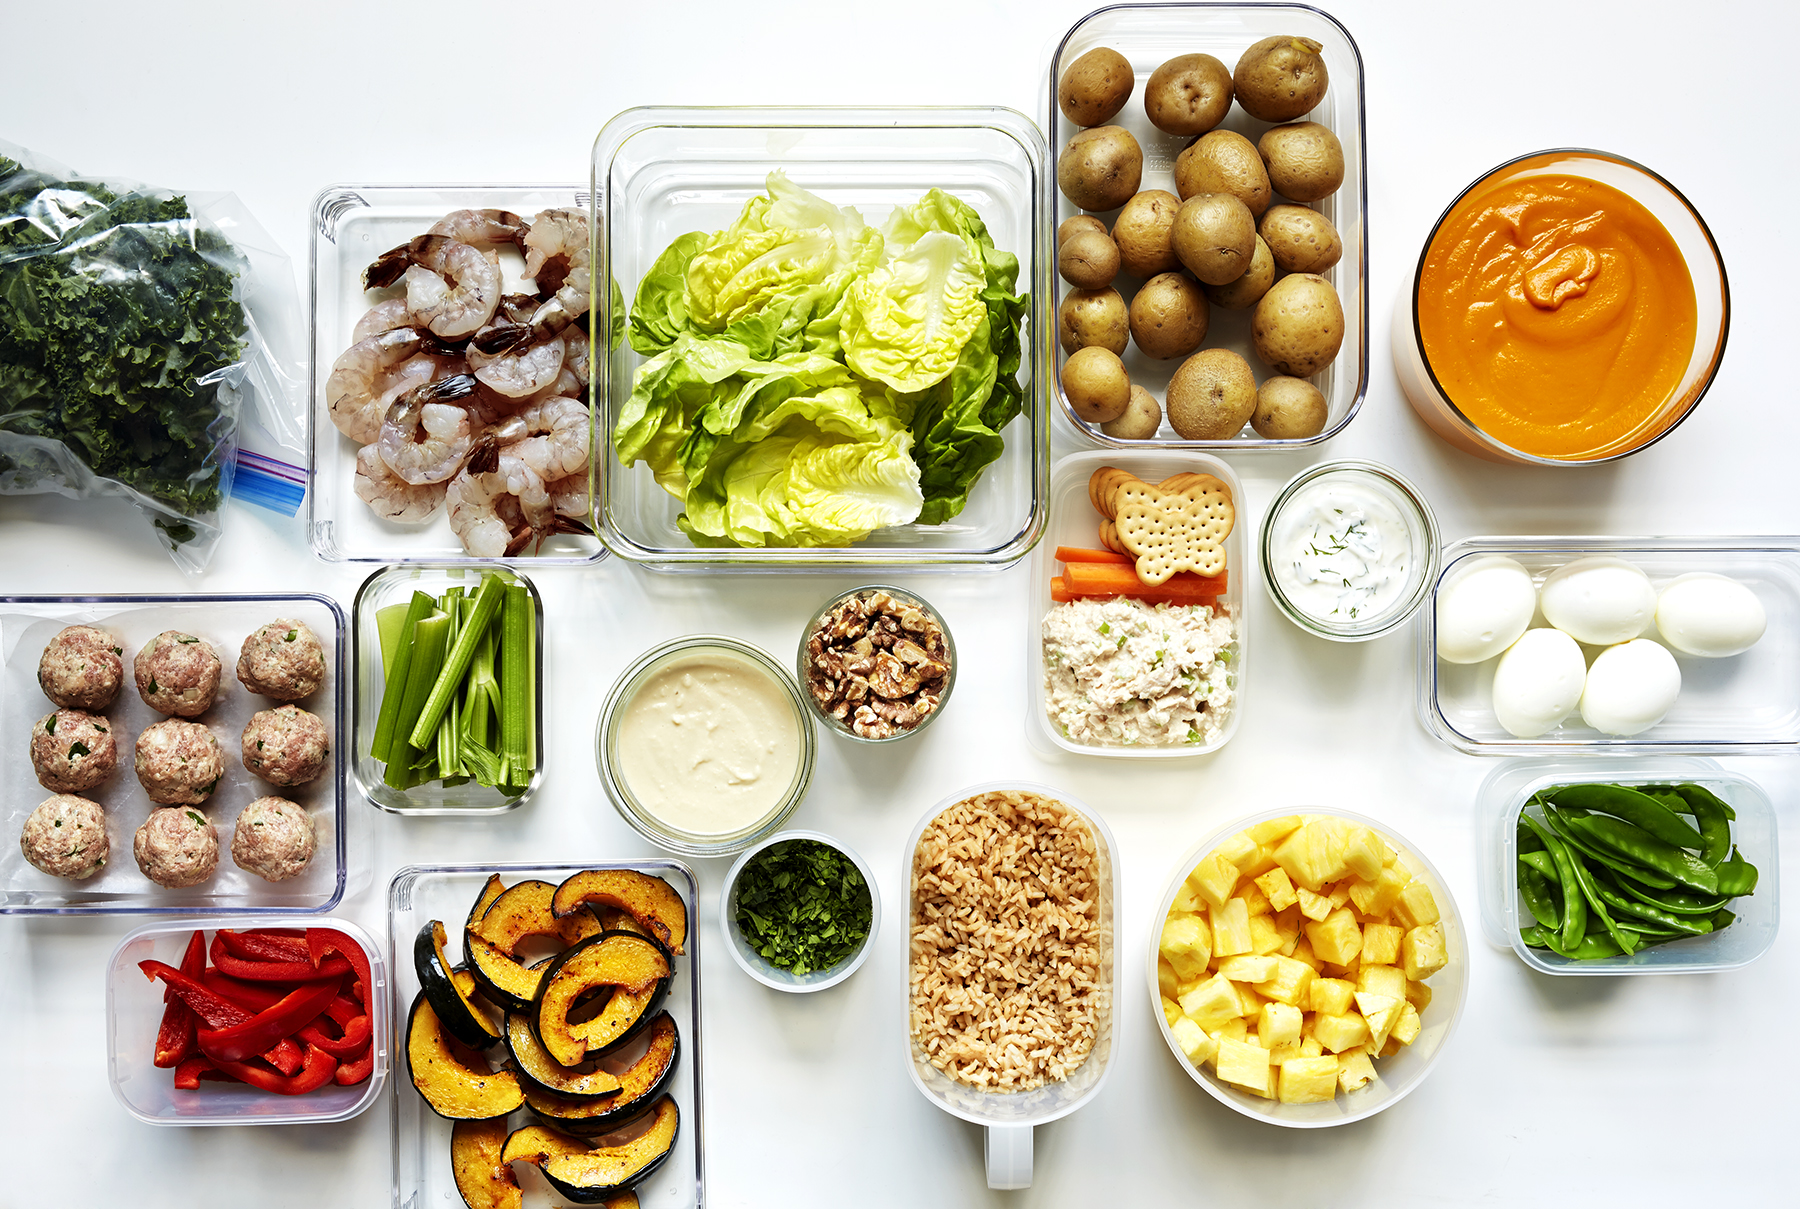 9 Meal Prep Ideas for the Week That Are Super Popular on Pinterest